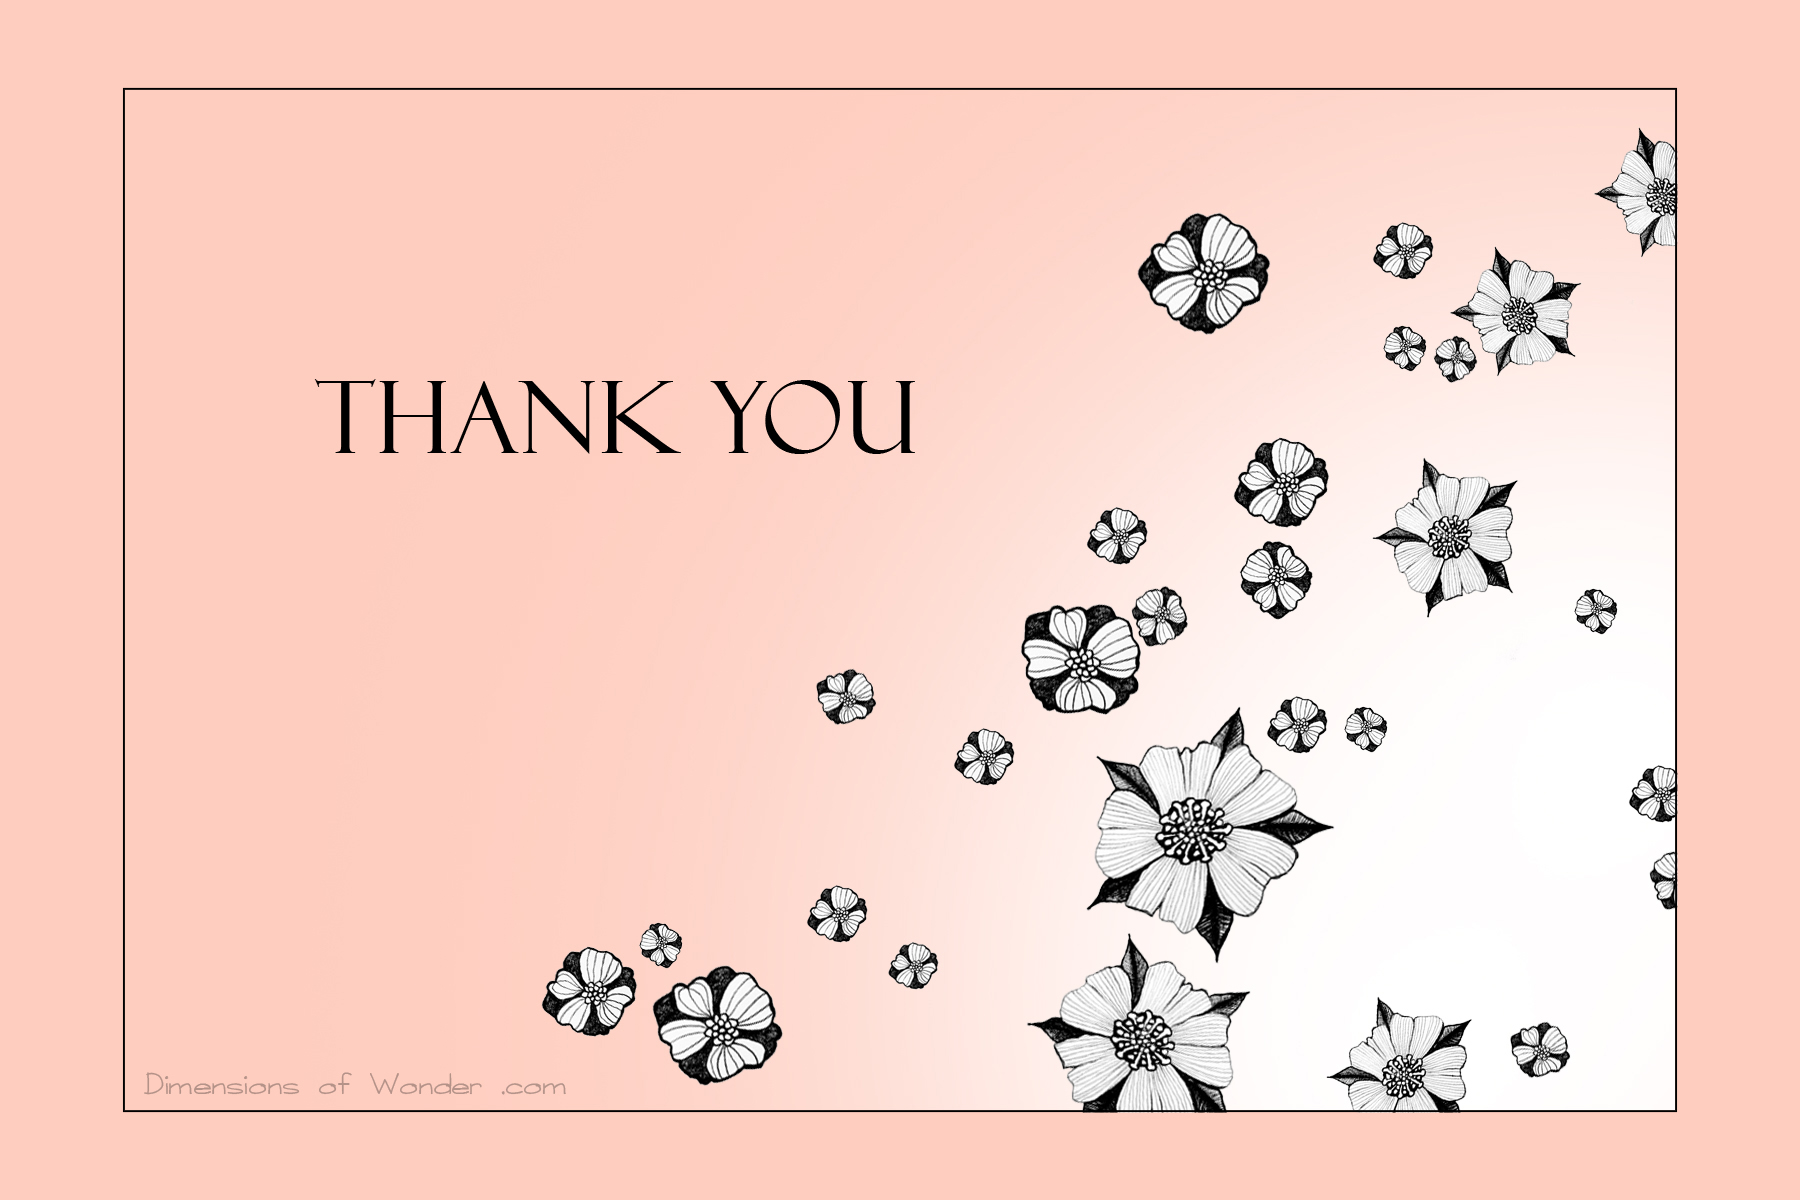 Free Printable Thank You Cards n 2 – Free Printable Religious Thank You Cards